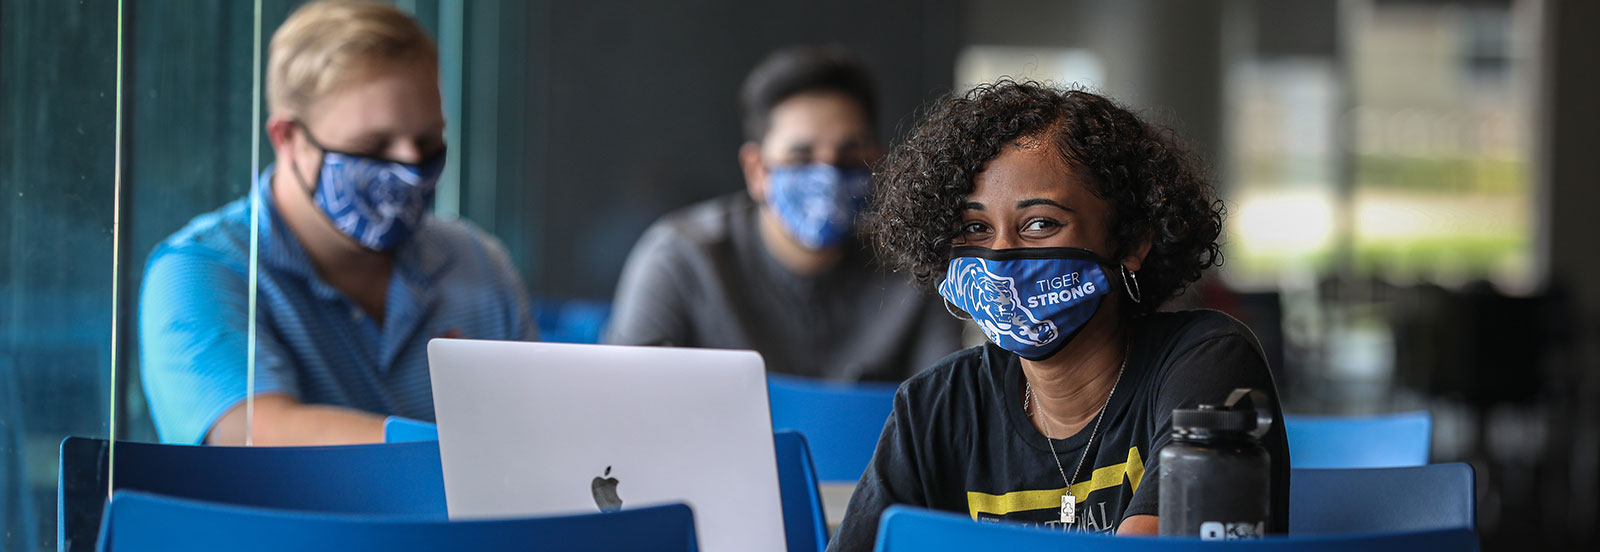 "student wearing face covering with UofM athletic logo and ""Tiger Strong""; 2 students distanced in the background with matching face covering"